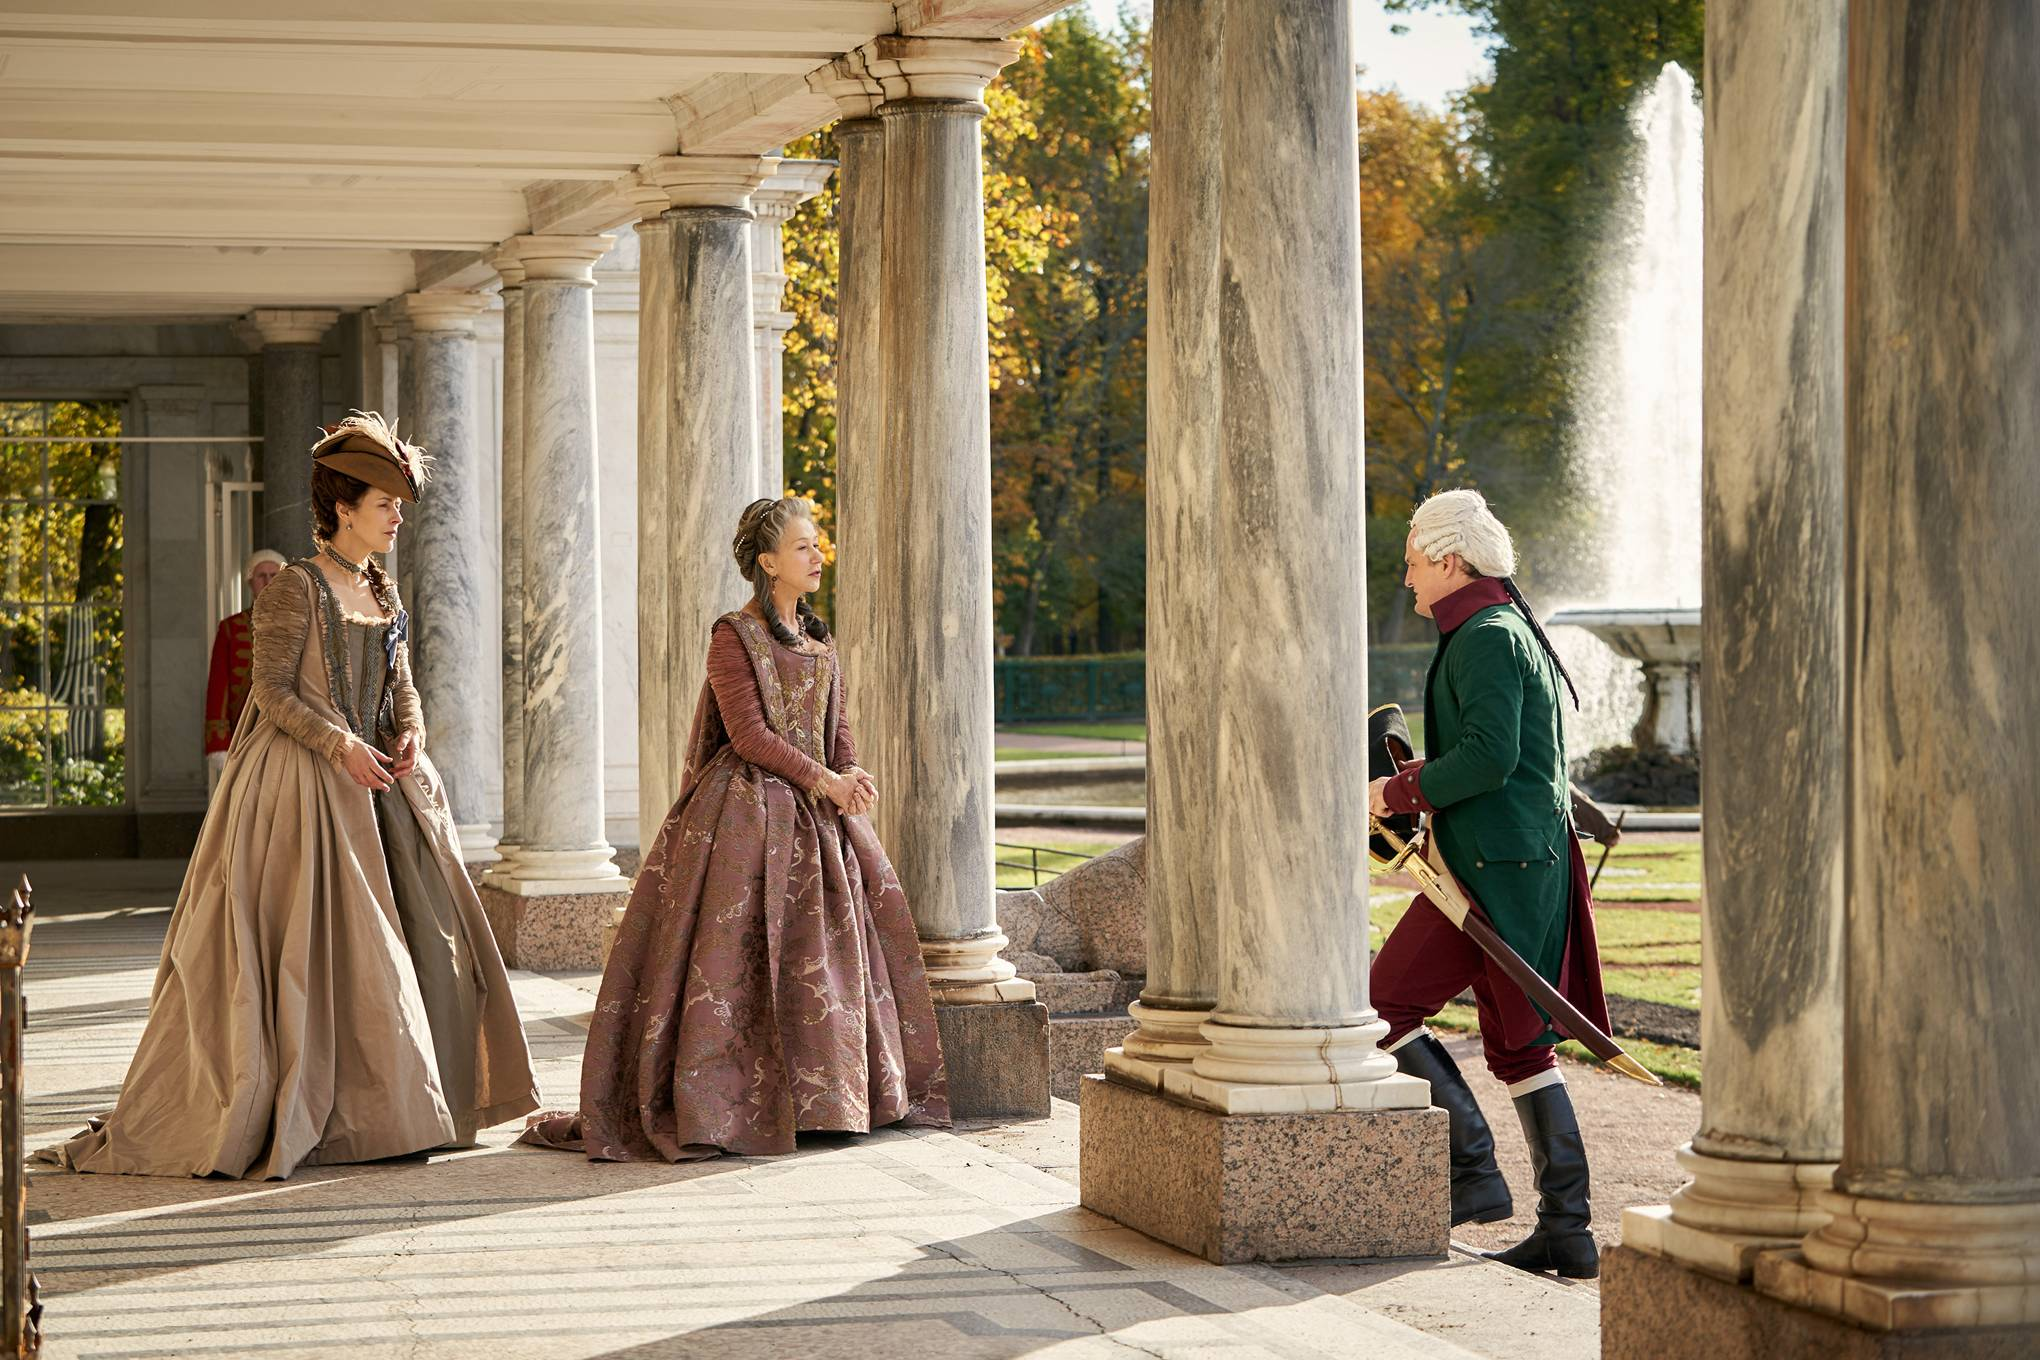 Where was Catherine the Great filmed?